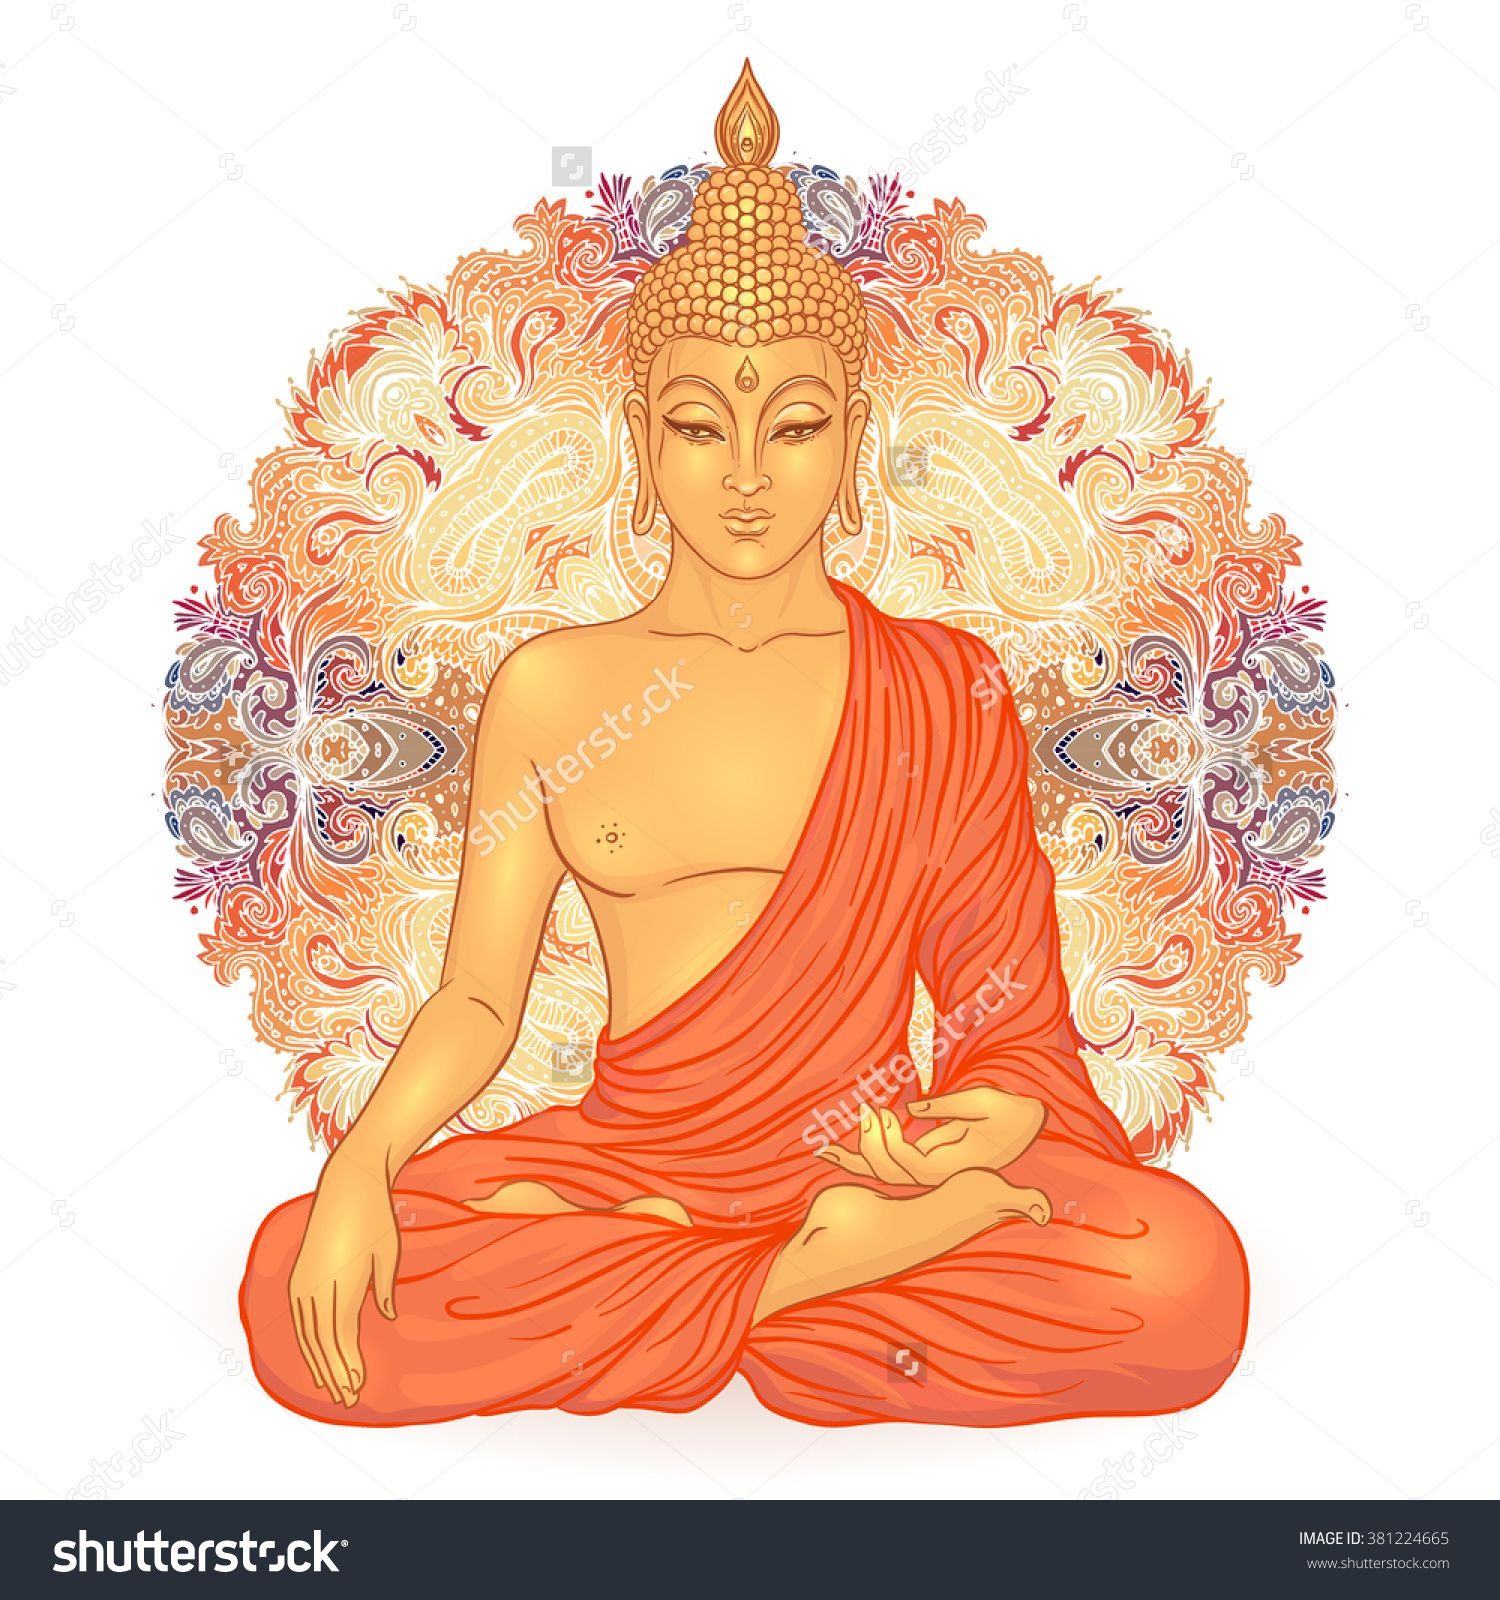 stock-vector-sitting-buddha-over-ornate-mandala-round-pattern-esoteric-vector-illustration-vintage-decorative-381224665.jpg (1500×1600)